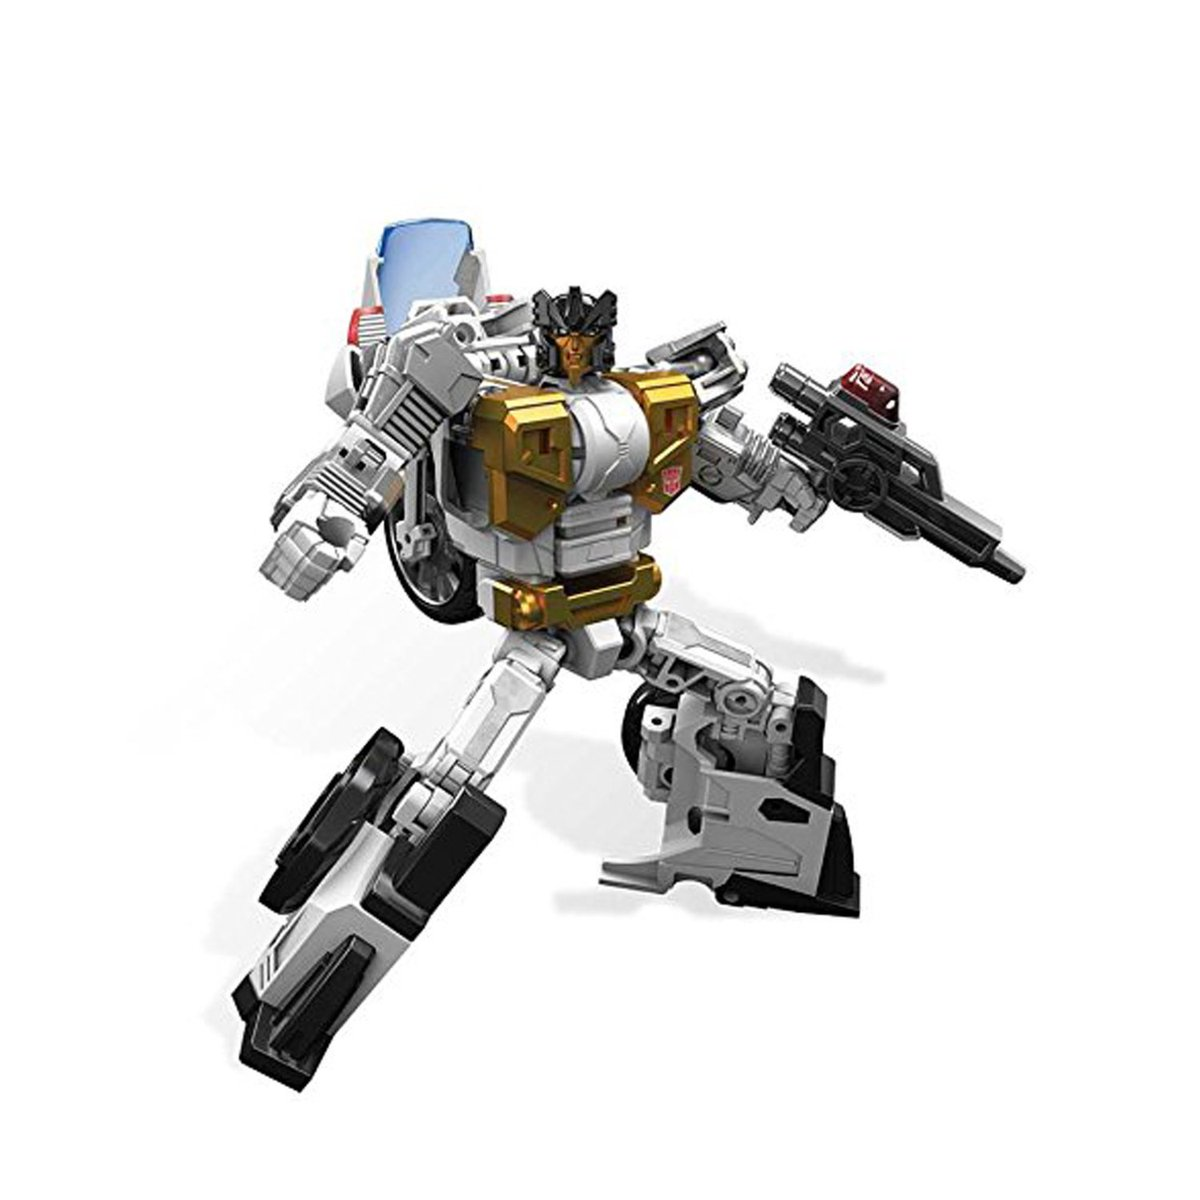 For a chance to win Combiner Wars Groove RT & follow! Winner announced Wednesday June 1st during RFC and via DM! https://t.co/hpstnyWtMe